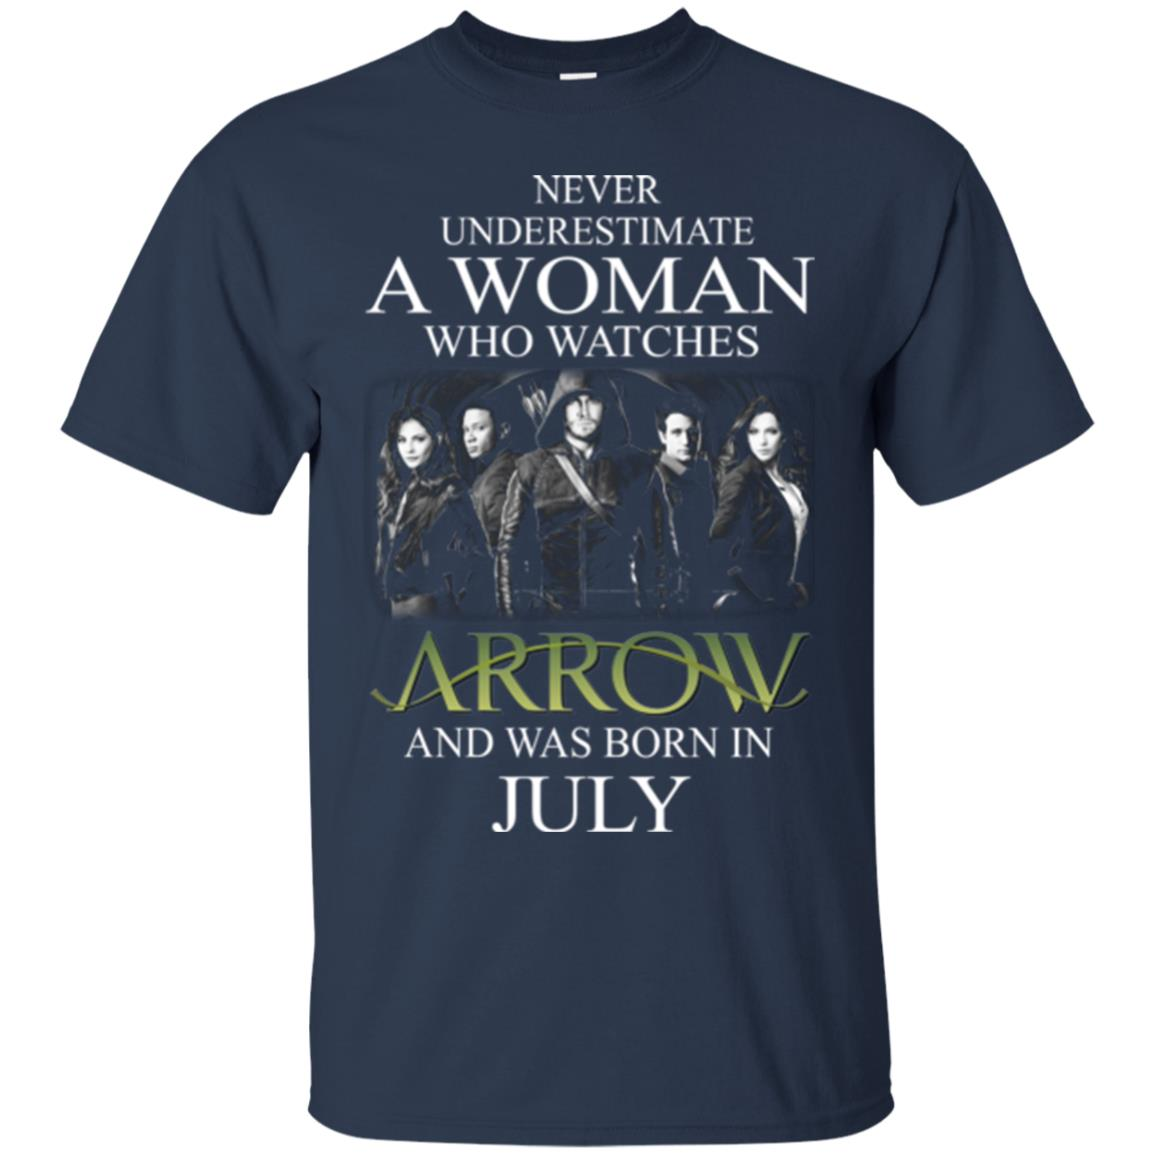 Never Underestimate A woman who watches Arrow and was born in July shirt - image 1519